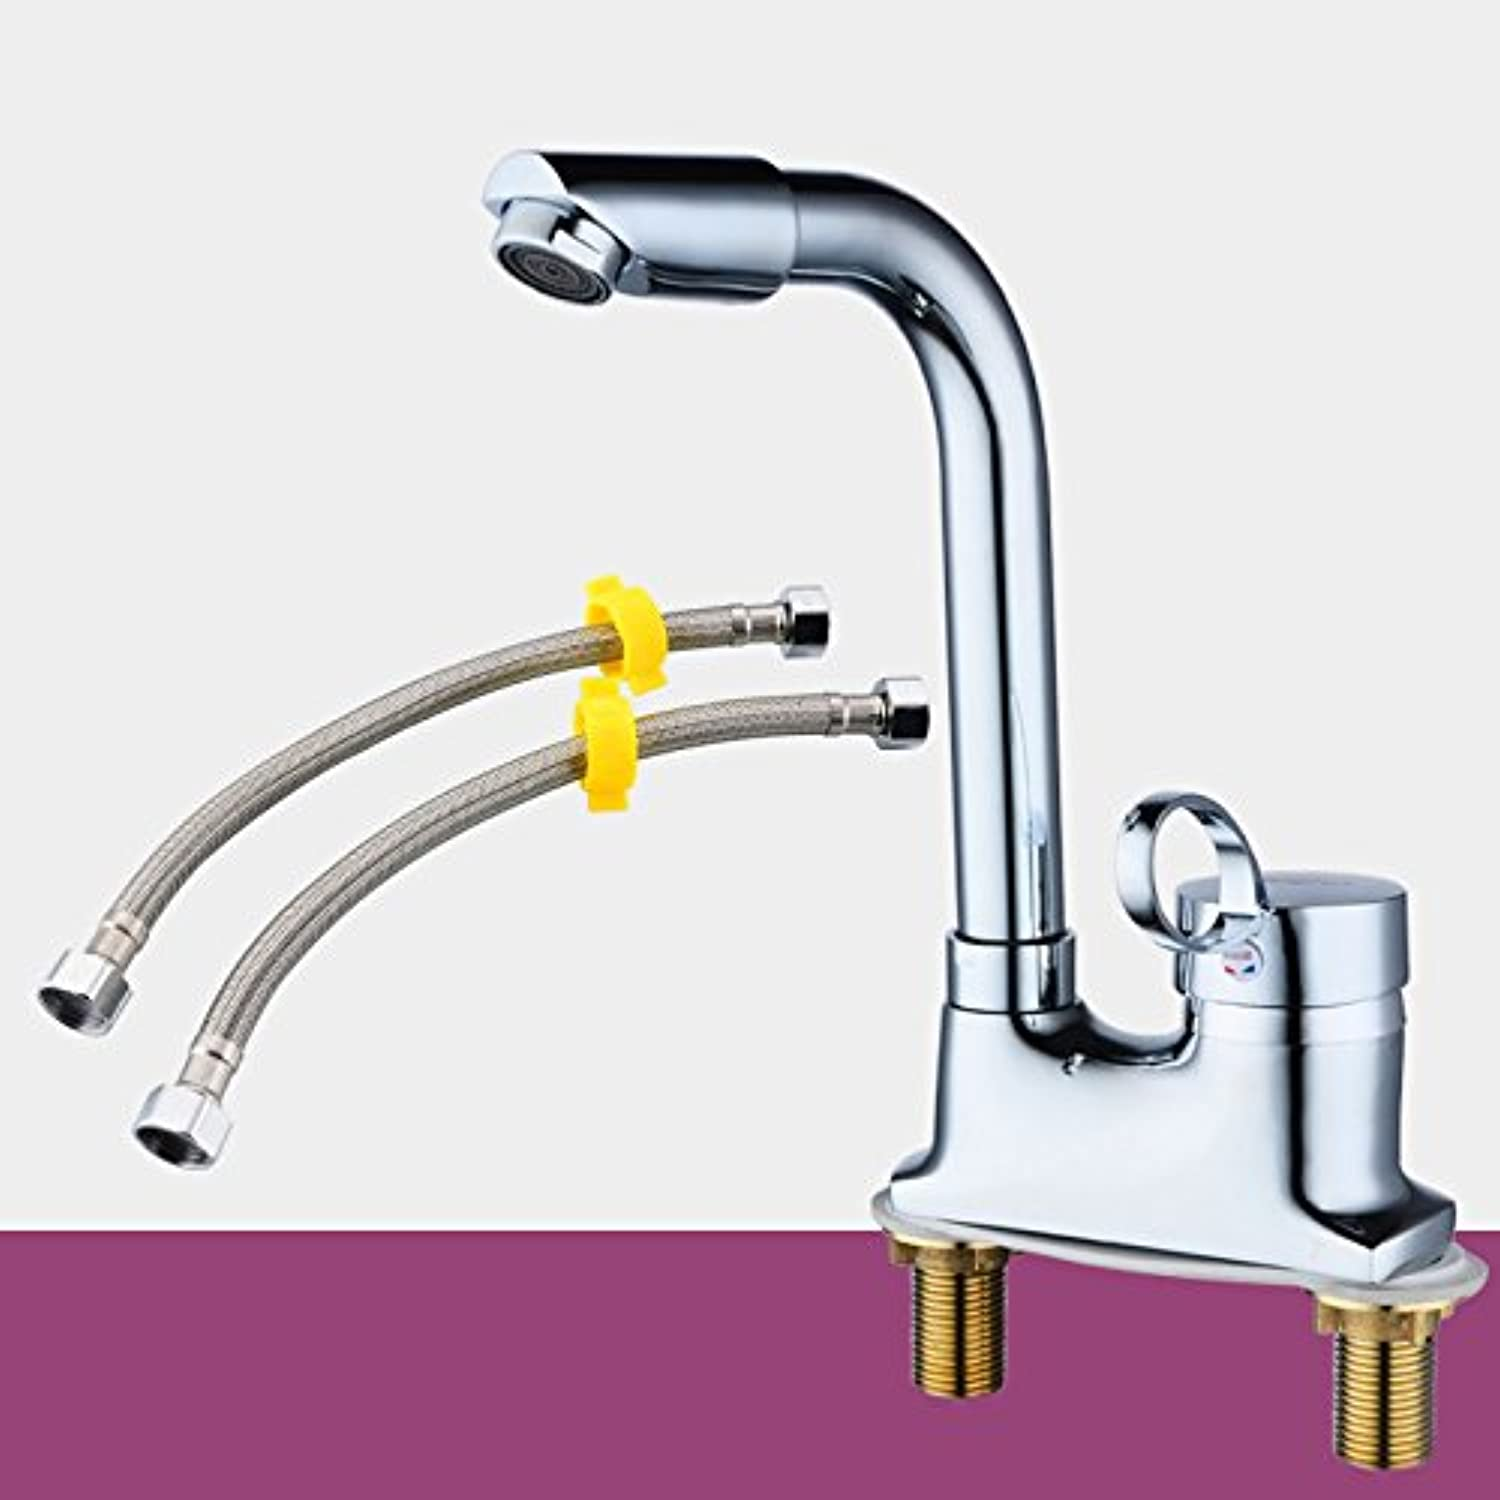 Hlluya Professional Sink Mixer Tap Kitchen Faucet Hot and cold two holes can redate the faucet, B